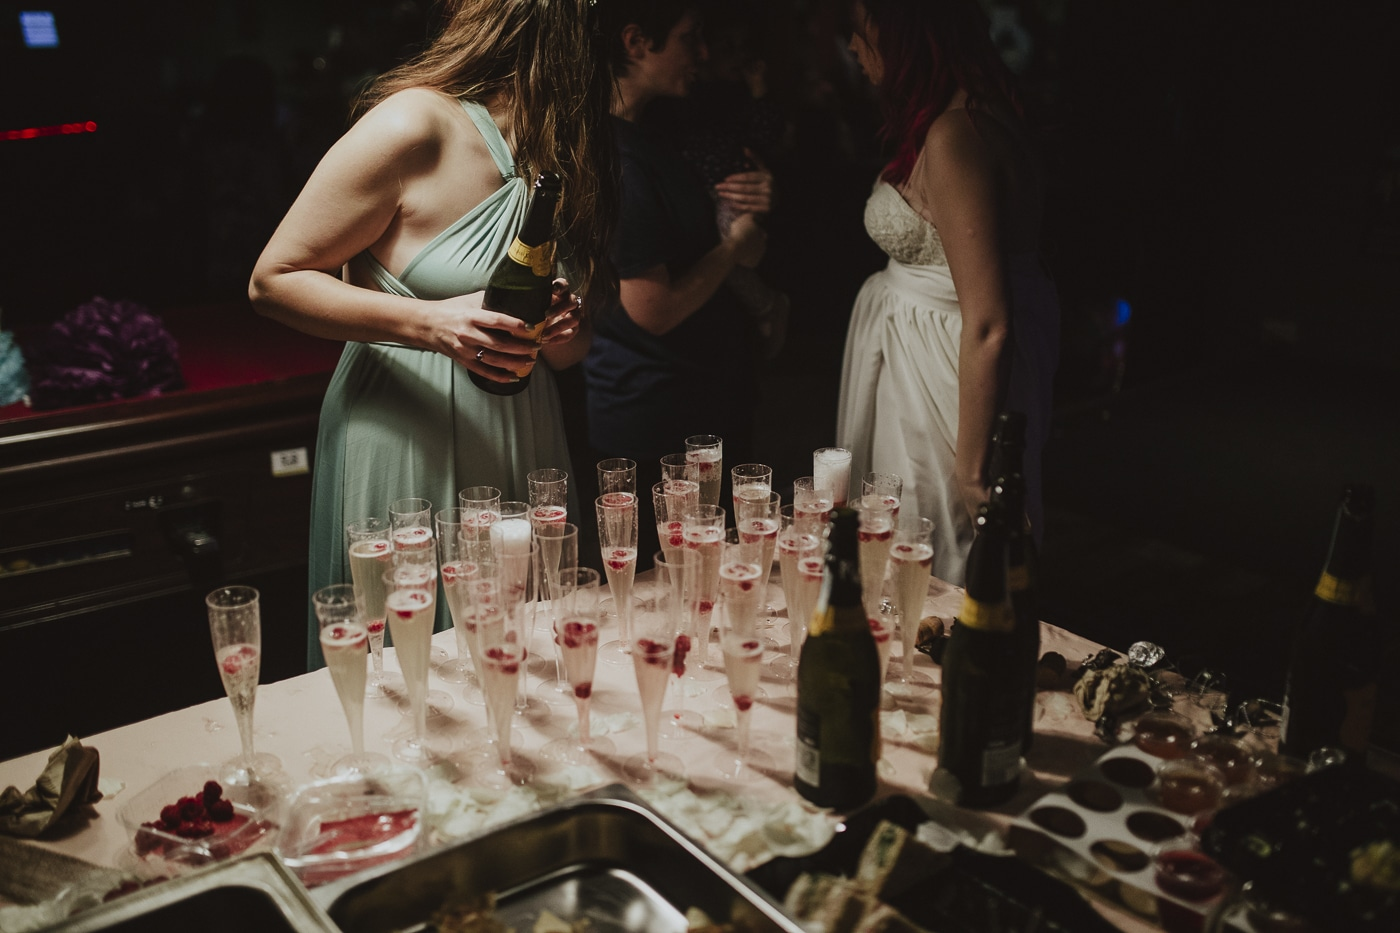 Pouring prosecco with raspberries by Joshua Wyborn Photographic